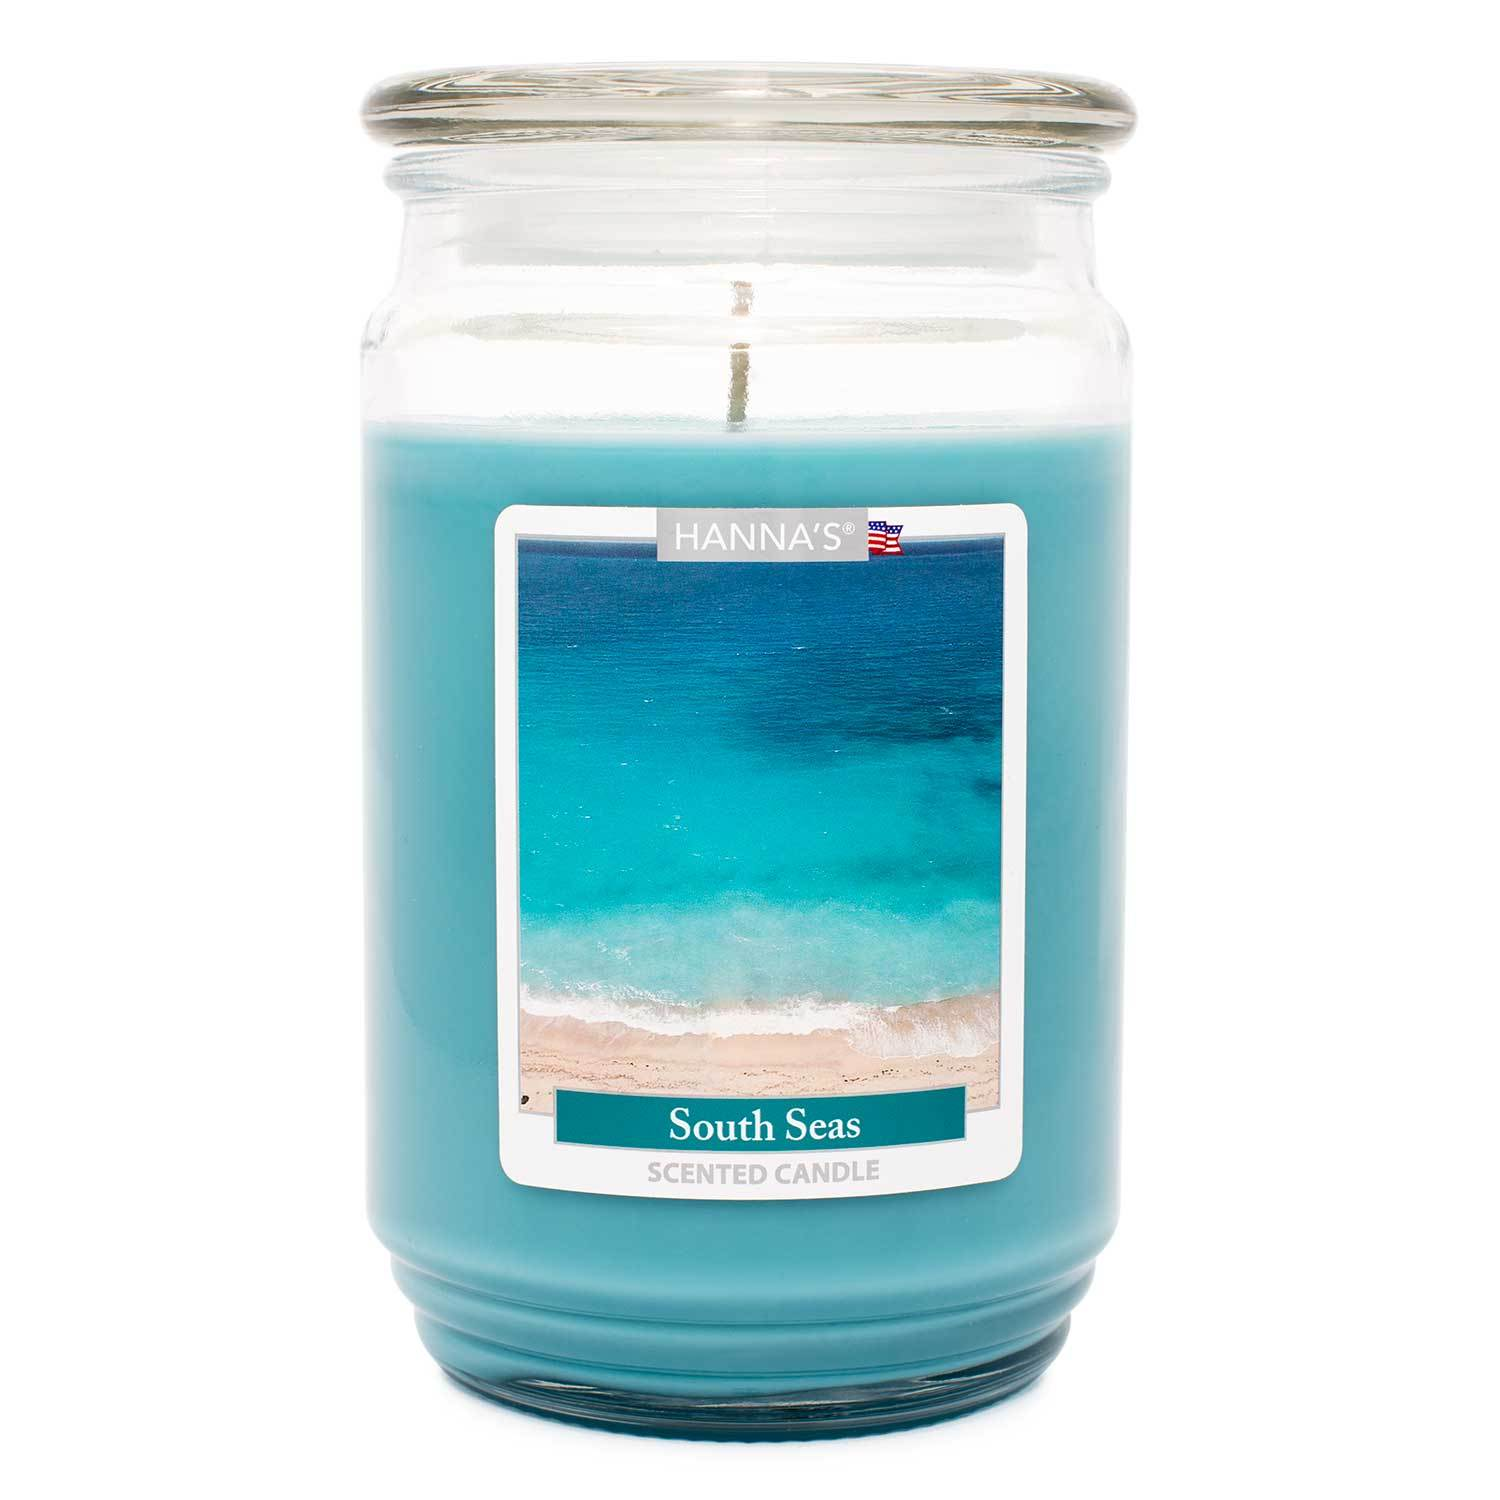 South Seas Scented Large Candle - Candlemart.com